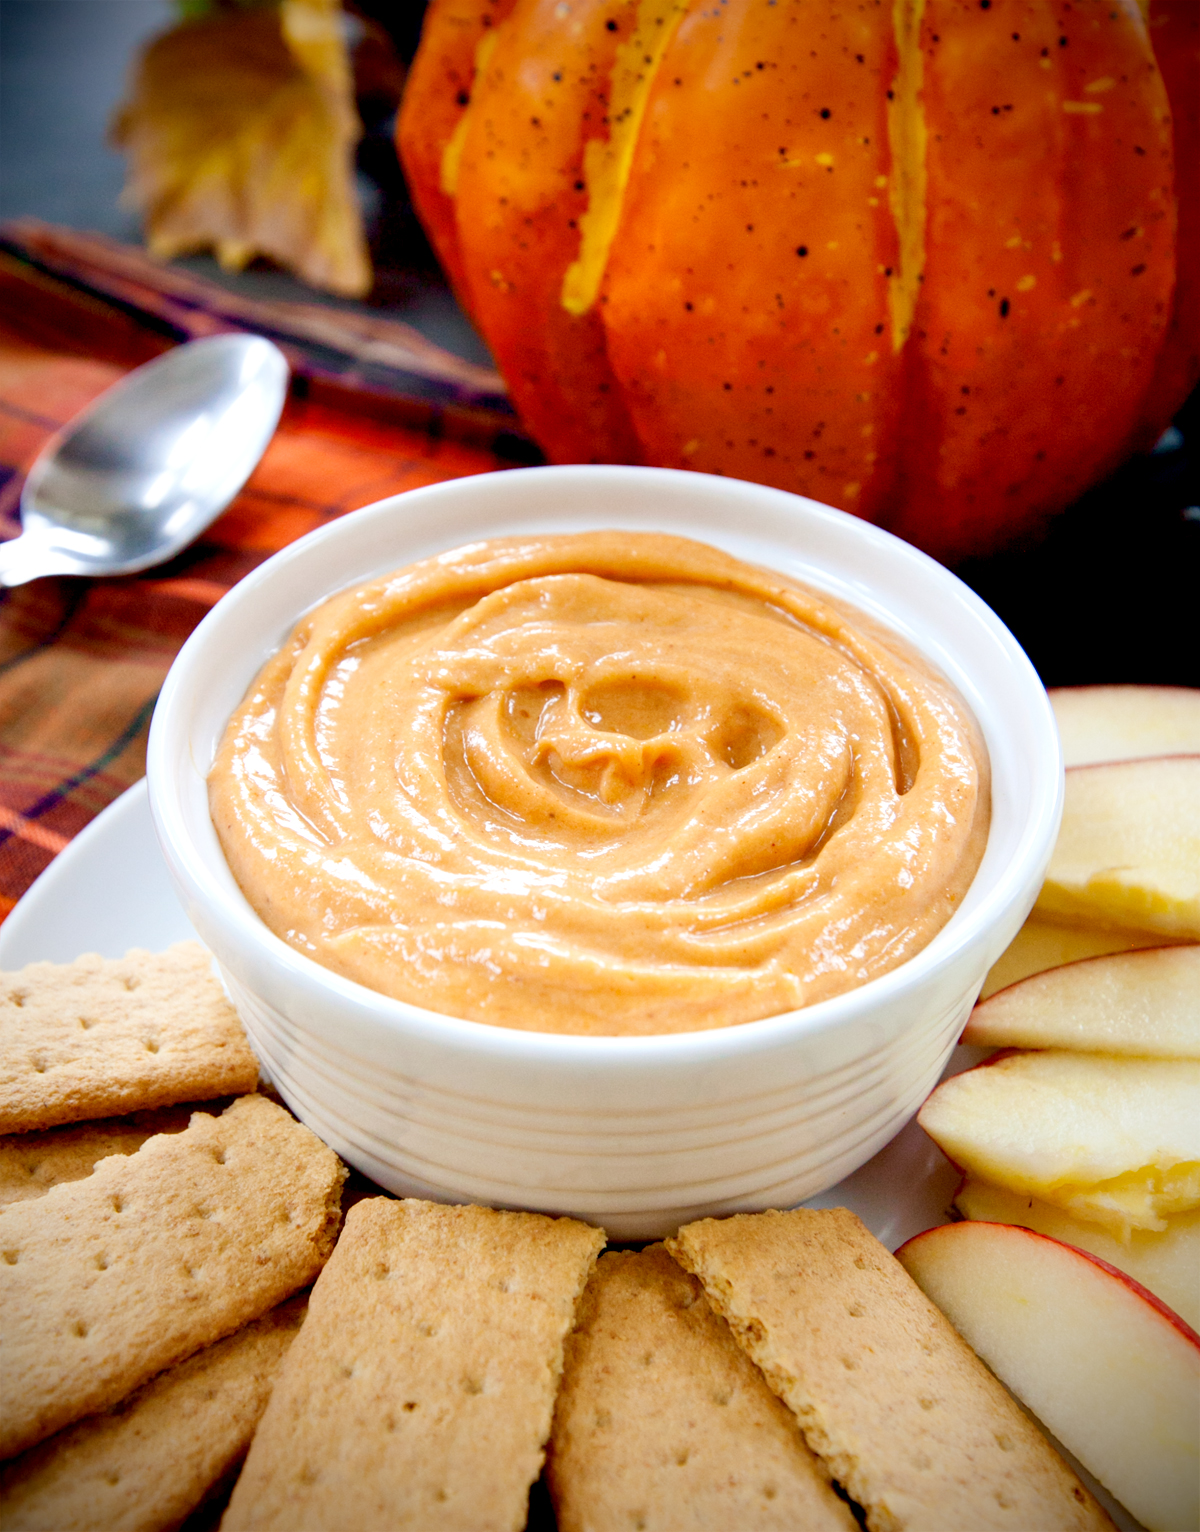 A bowl of cream cheese pumpkin dip with graham crackers and apple slices for dipping.